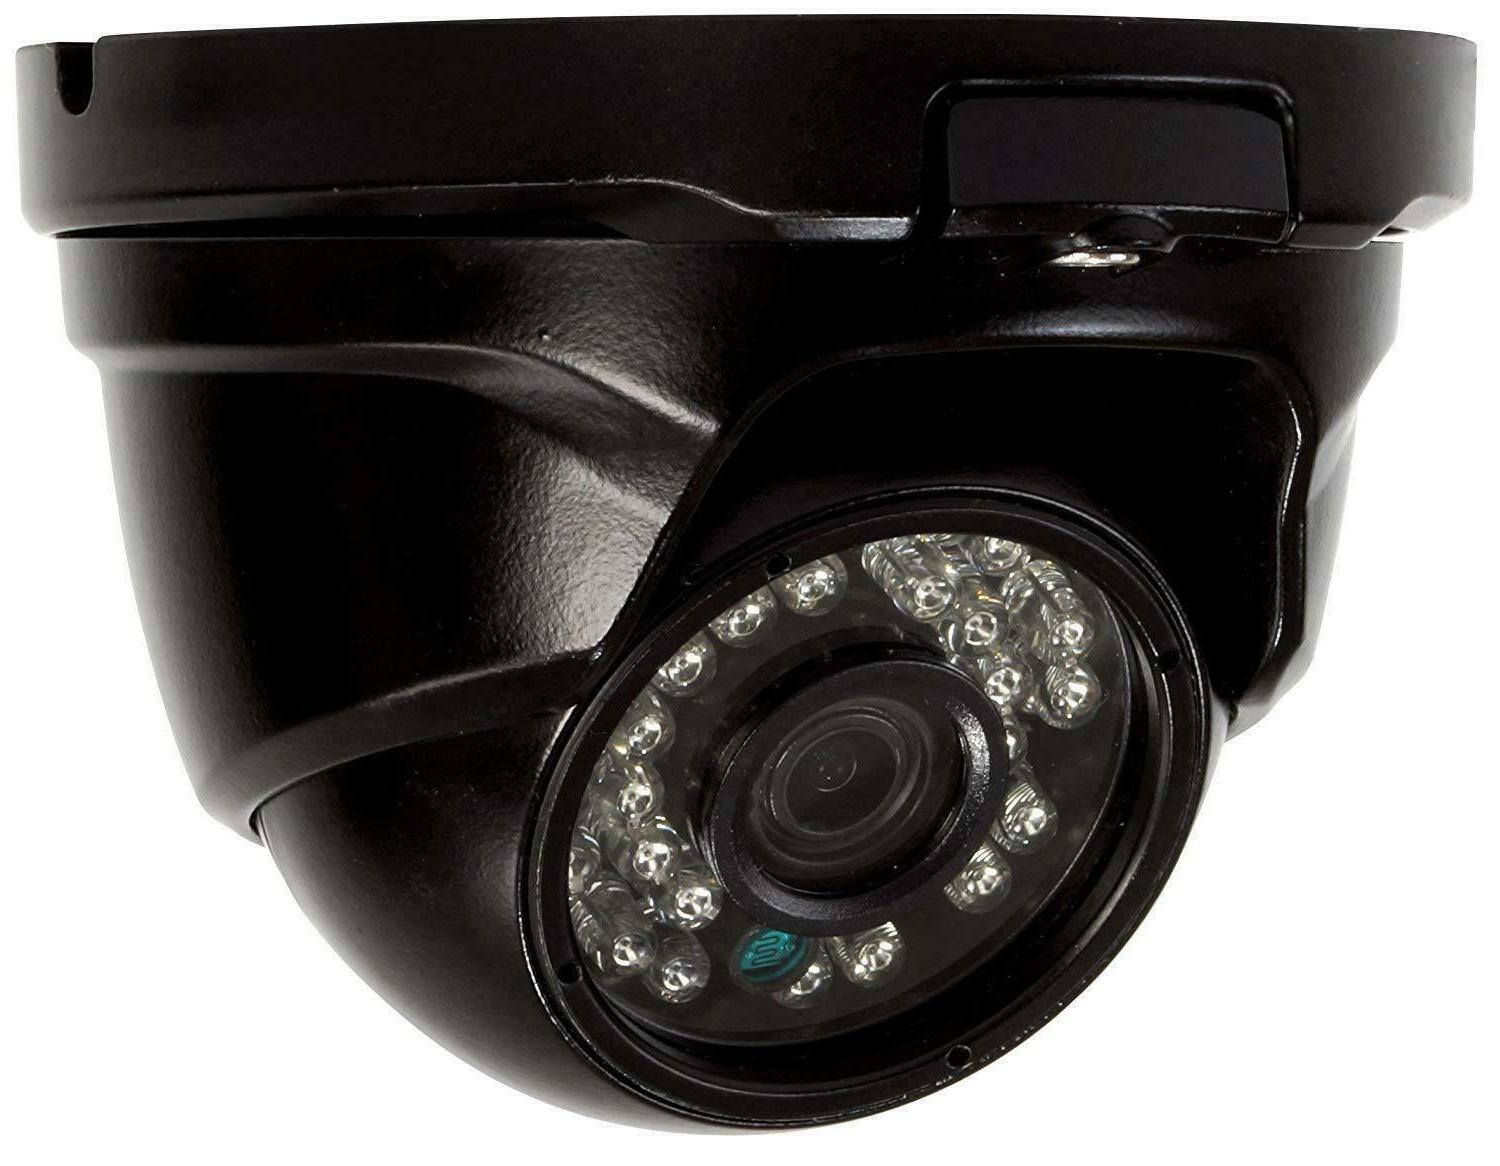 New Q-See 1080p Security Cameras